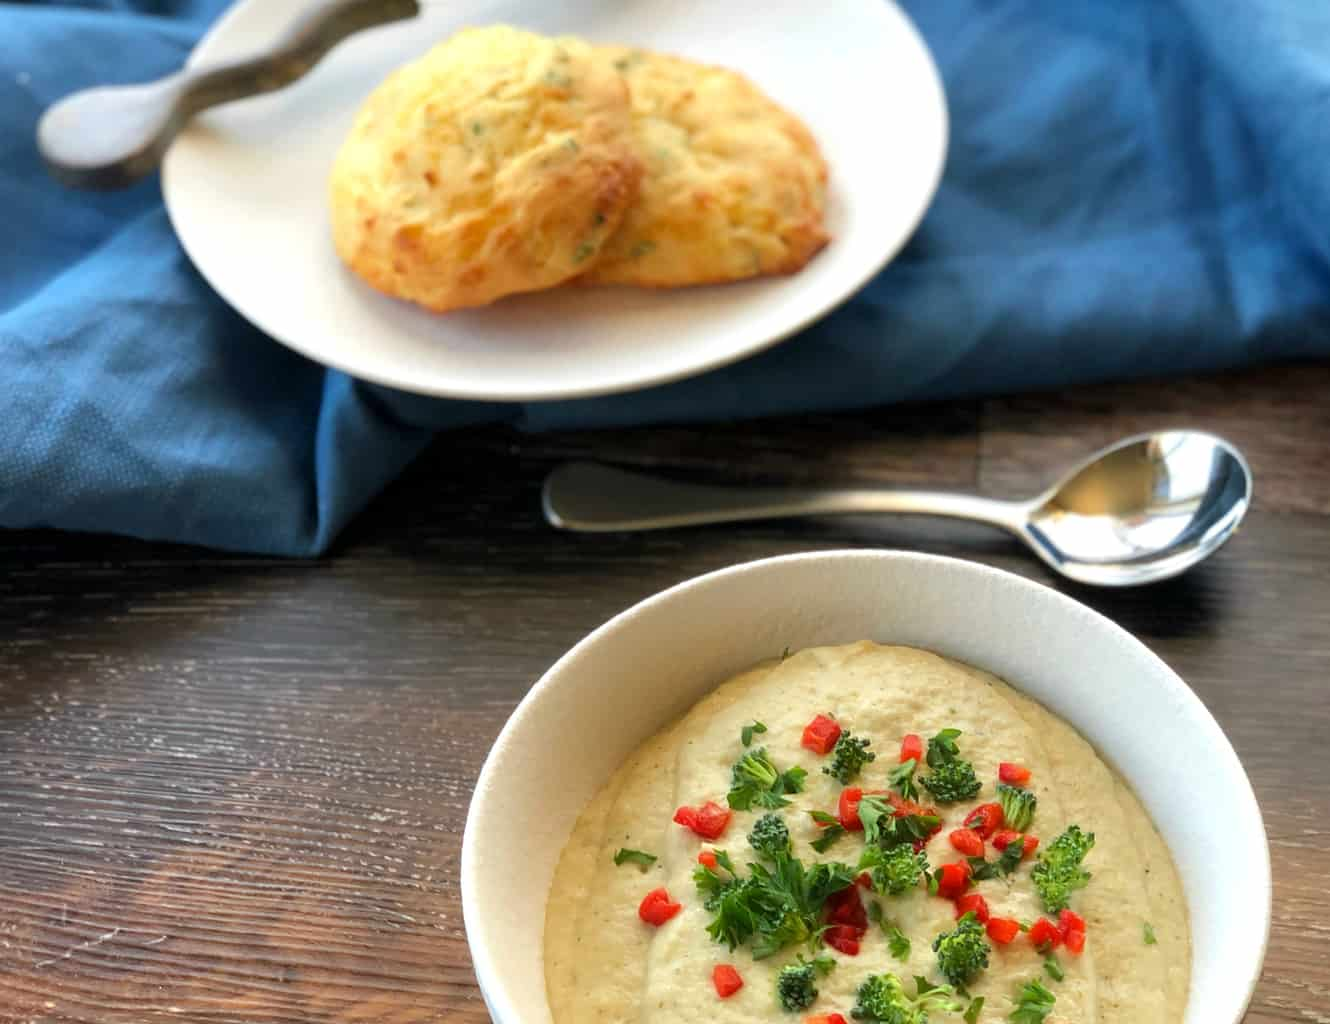 The Best Creamy Cauliflower & Broccoli Soup